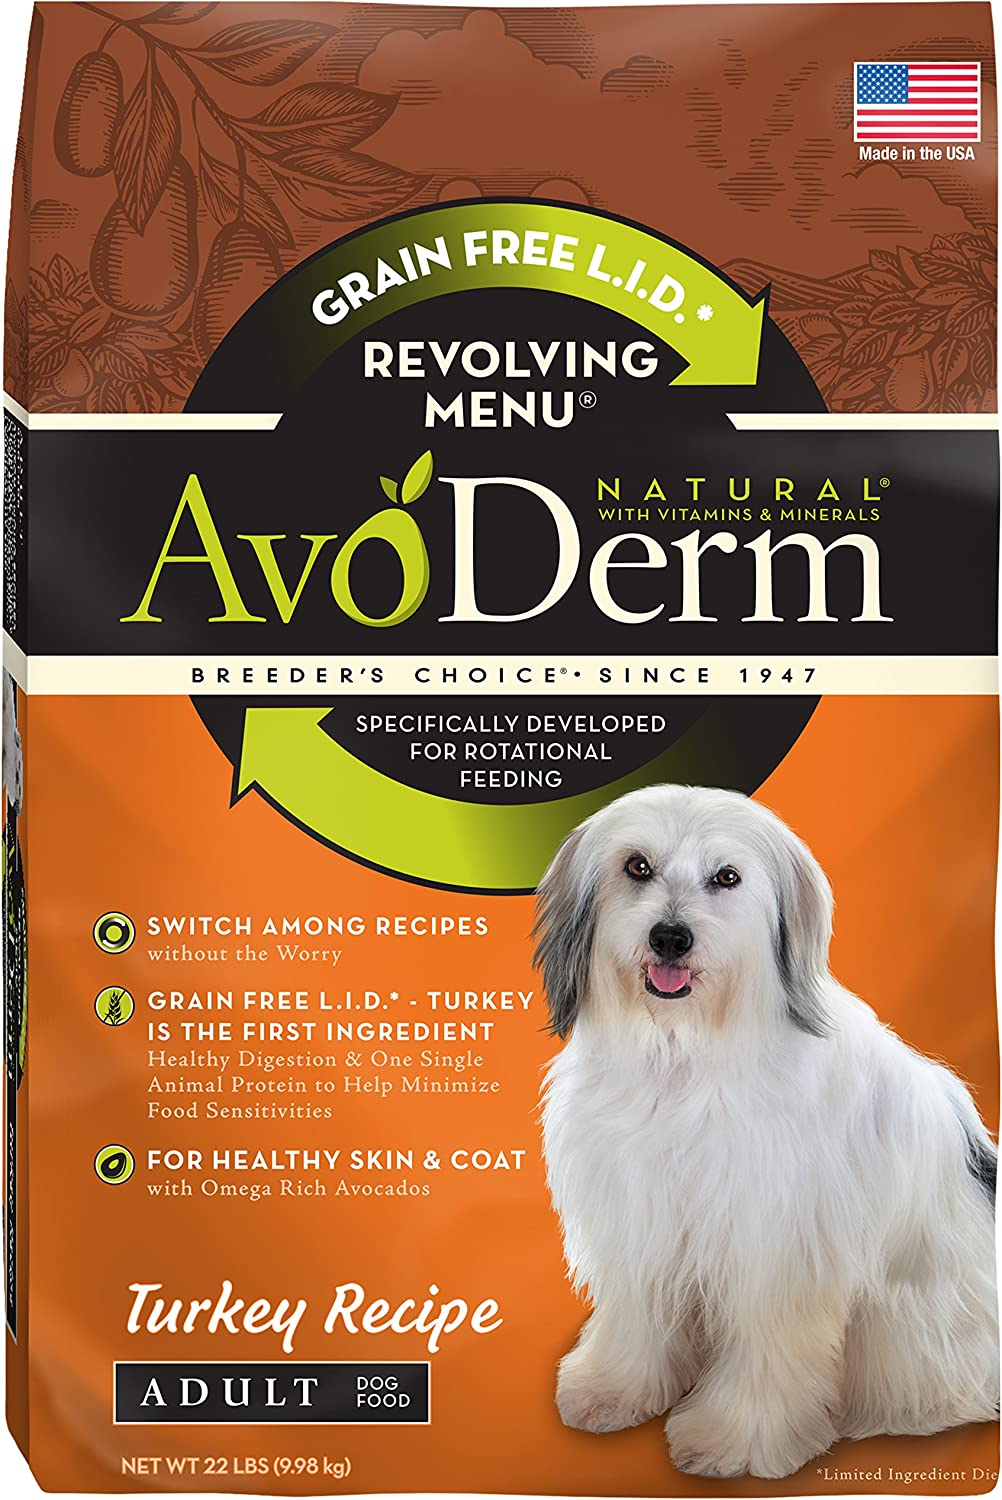 AvoDerm Natural Revolving Menu Dry Dog Food for Rotational Feeding, Food Intolerance and Sensitivities, Turkey